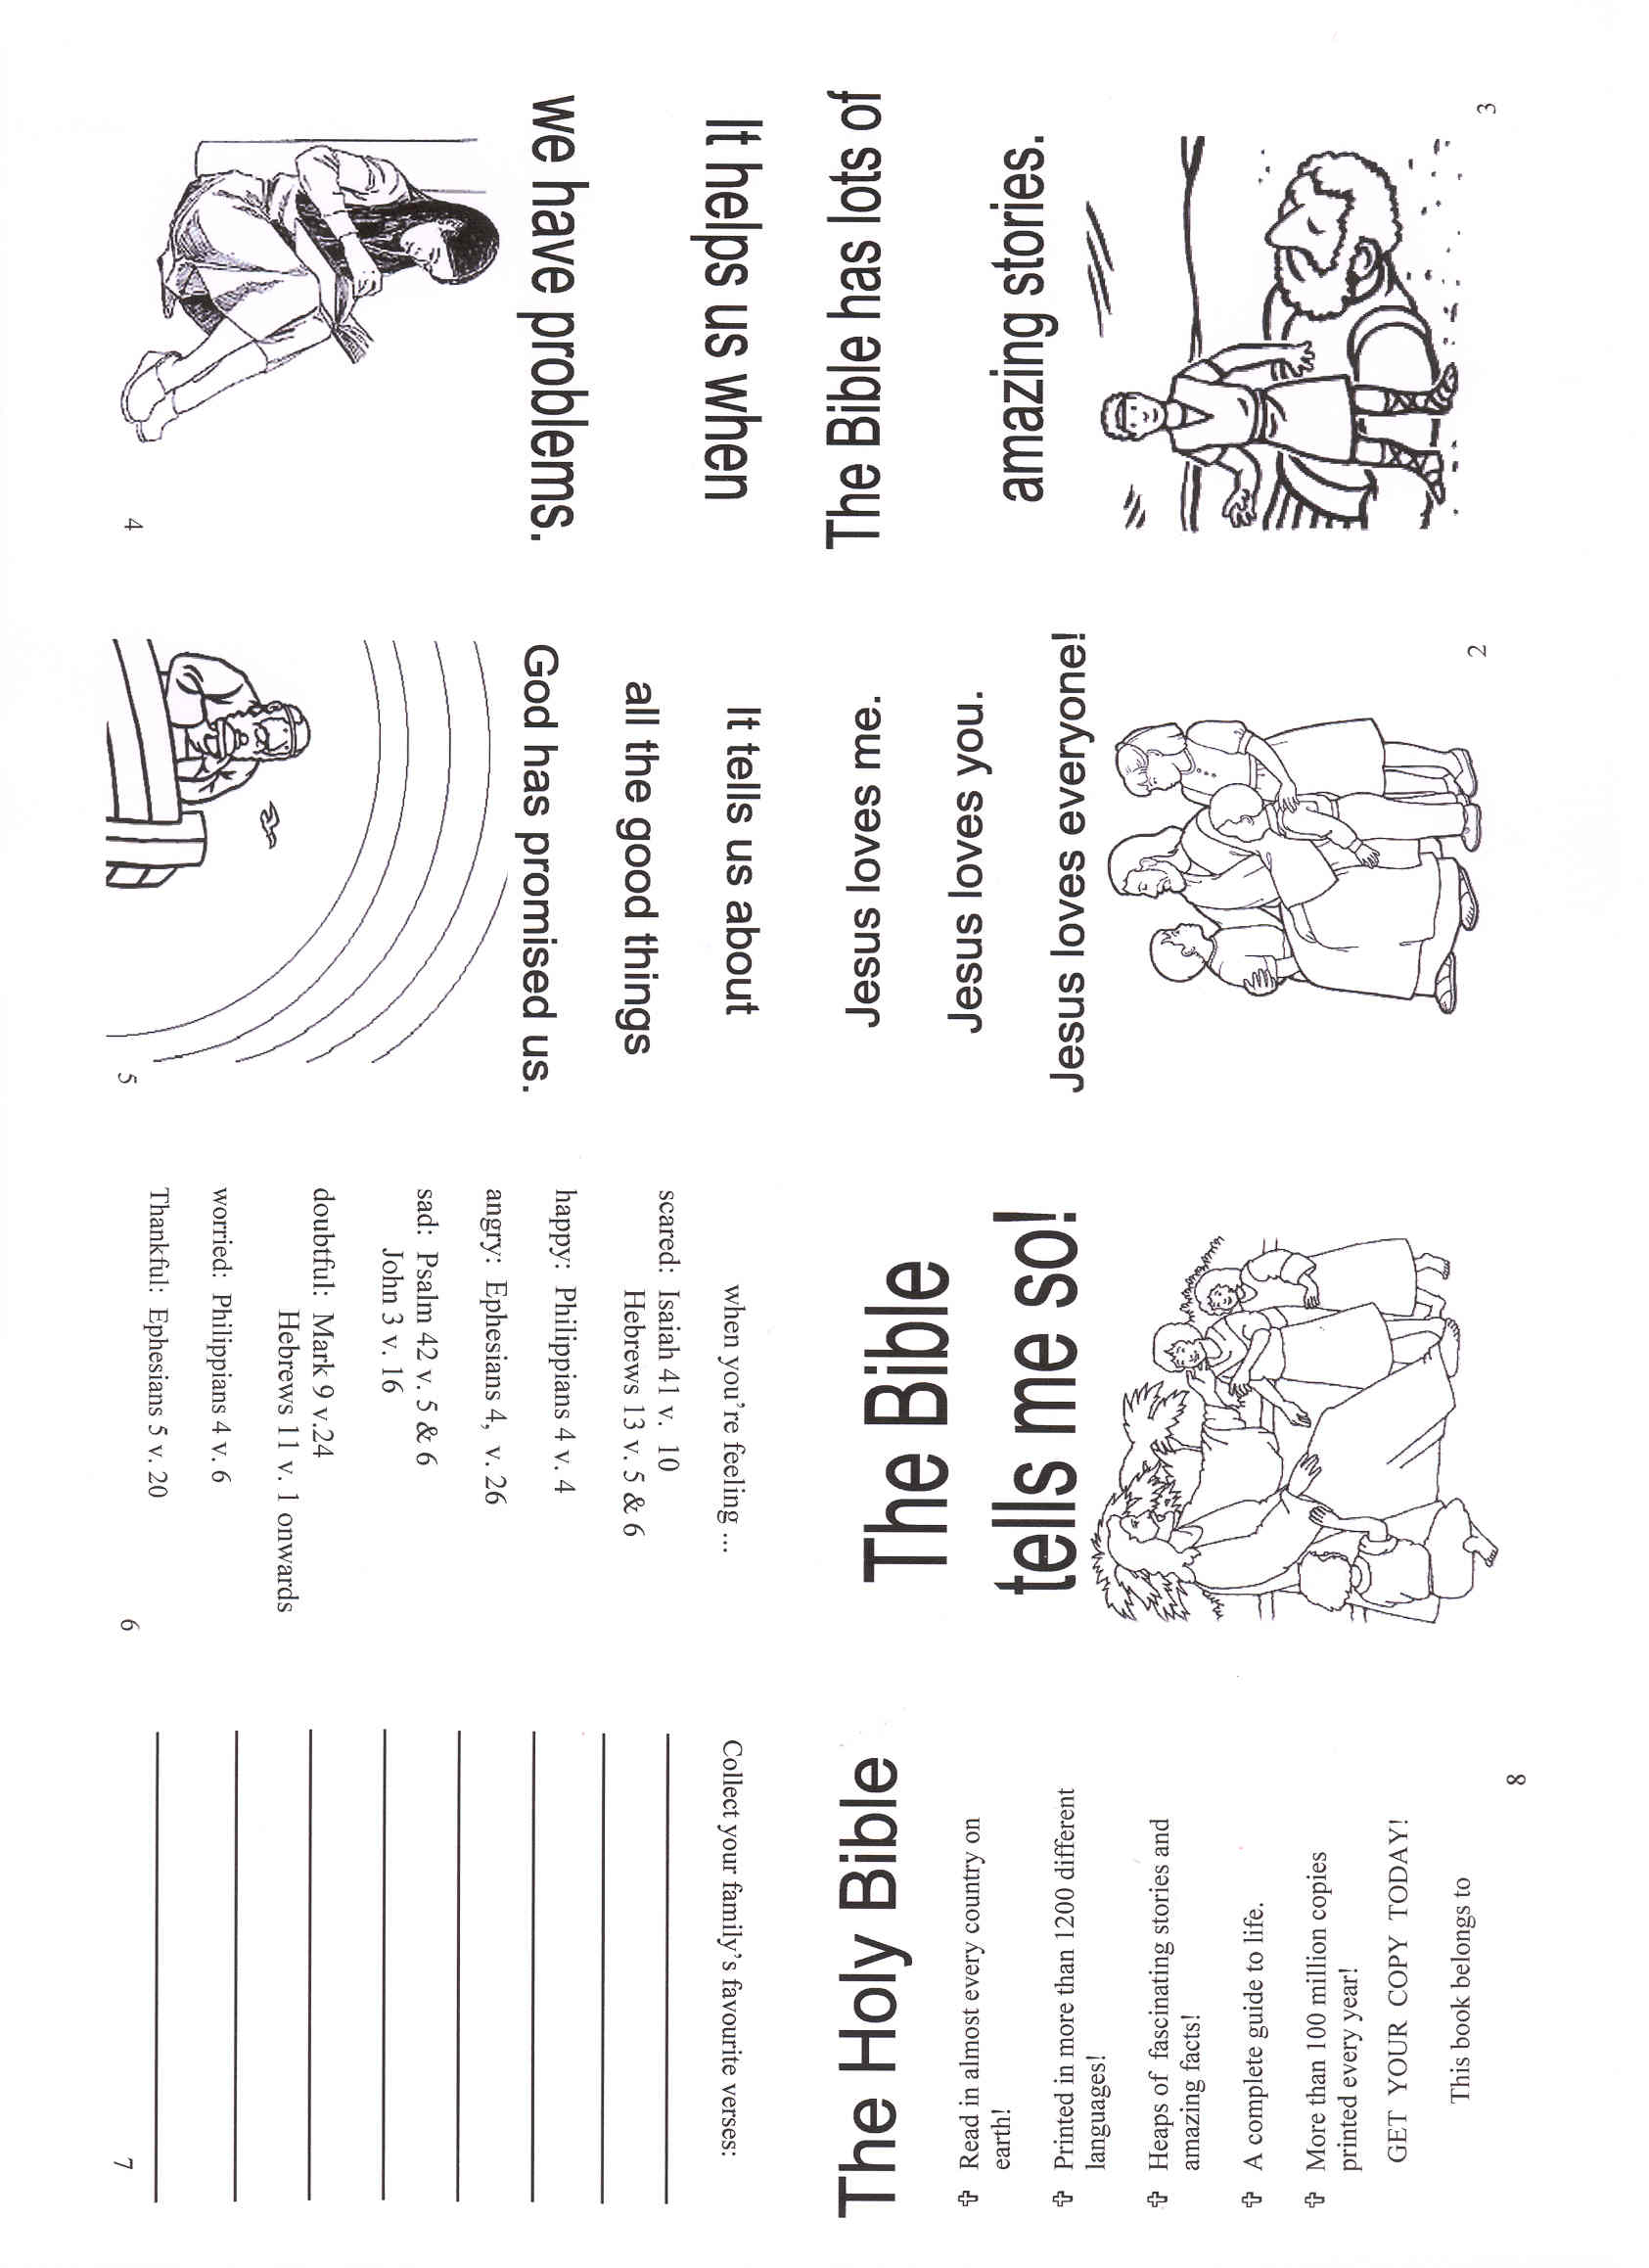 worksheet Baptism Worksheet Ks1 church lesson plan both the building and people pews